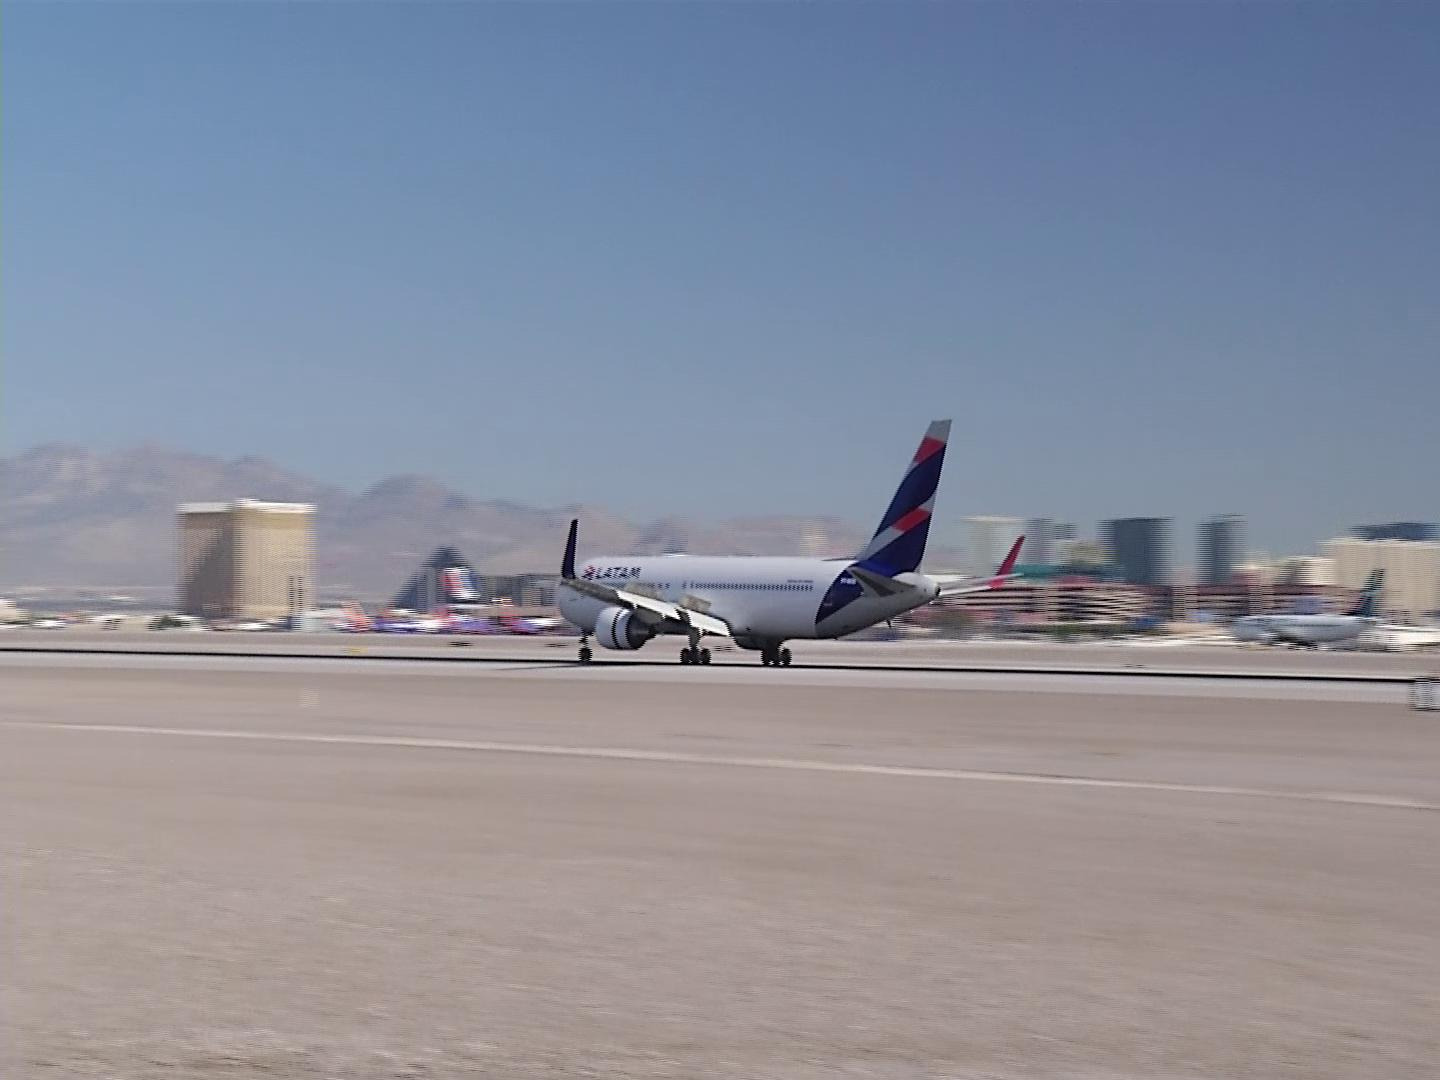 Straight from Sao Paulo, newest service to/from Las Vegas arrives at McCarran